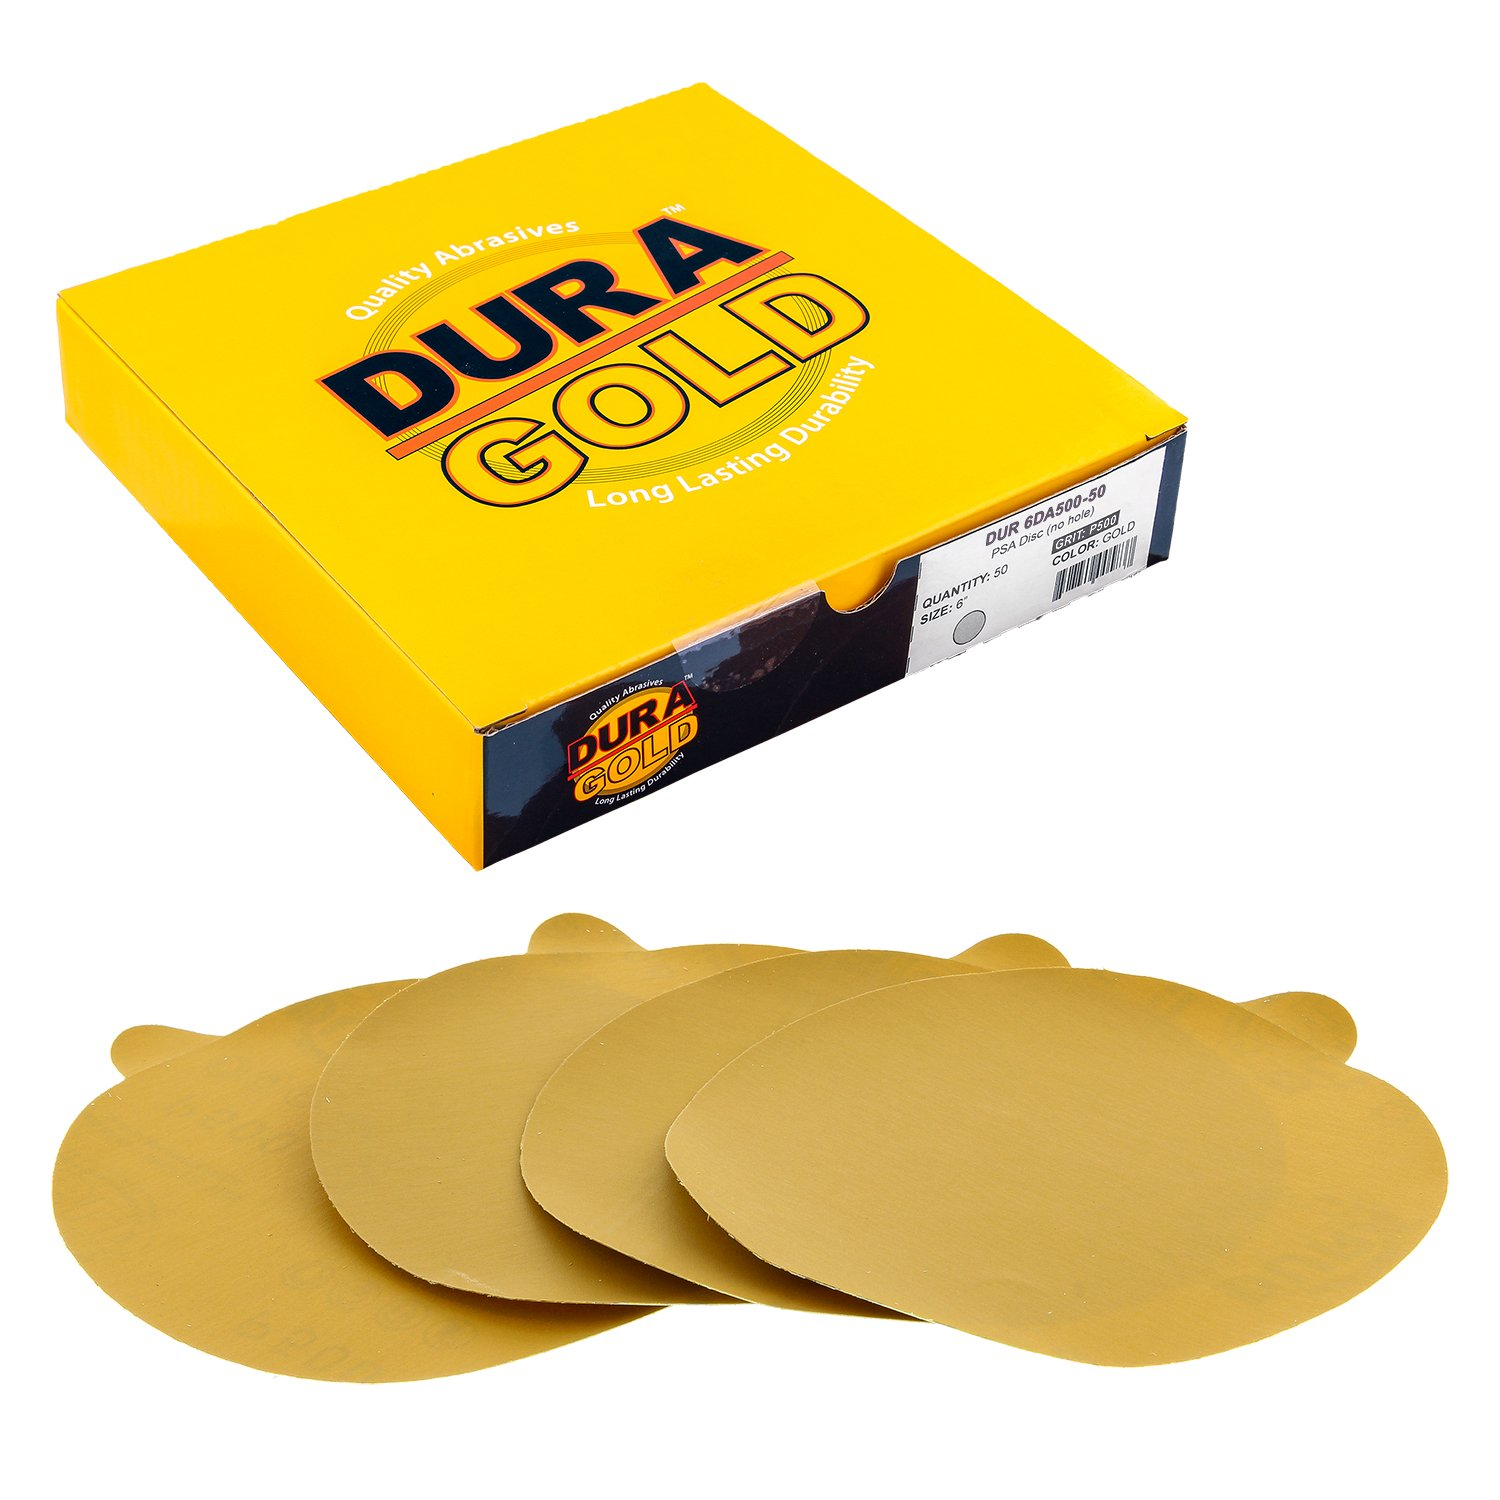 Dura-Gold - Premium - 500 Grit 6'' Gold PSA Self Adhesive Stickyback Sanding Discs for DA Sanders - Box of 50 Sandpaper Finishing Discs for Automotive and Woodworking